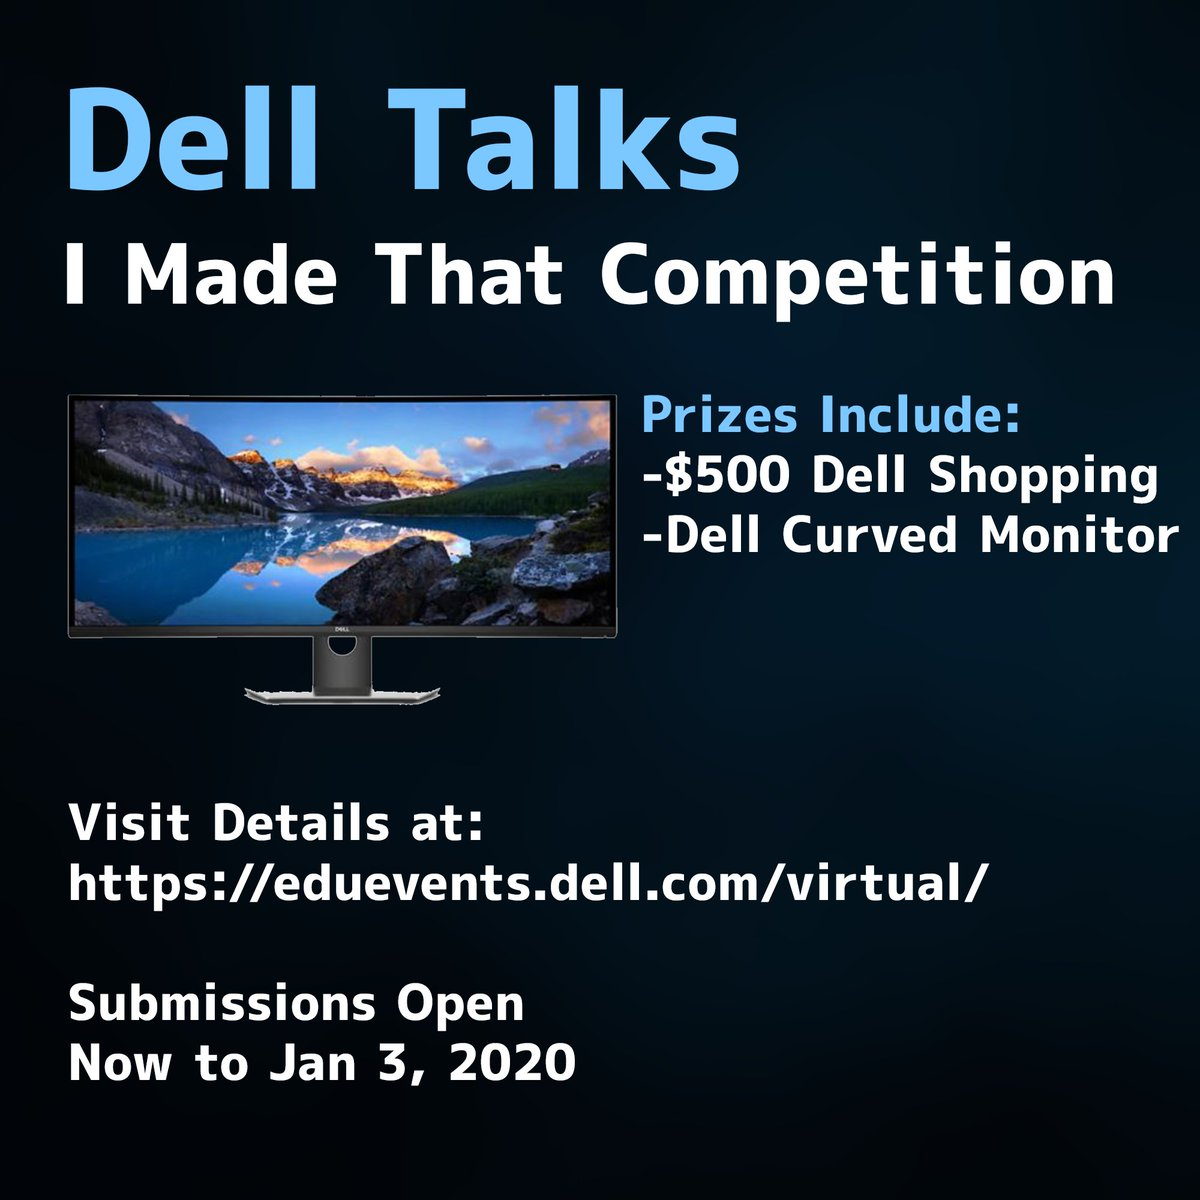 Win a Dell Curved Monitor through Dell's I Made That Competition! Go to https://t.co/N4s1w7sn3I for details. #contest #alienwarepartner https://t.co/R0ZnafwNzP